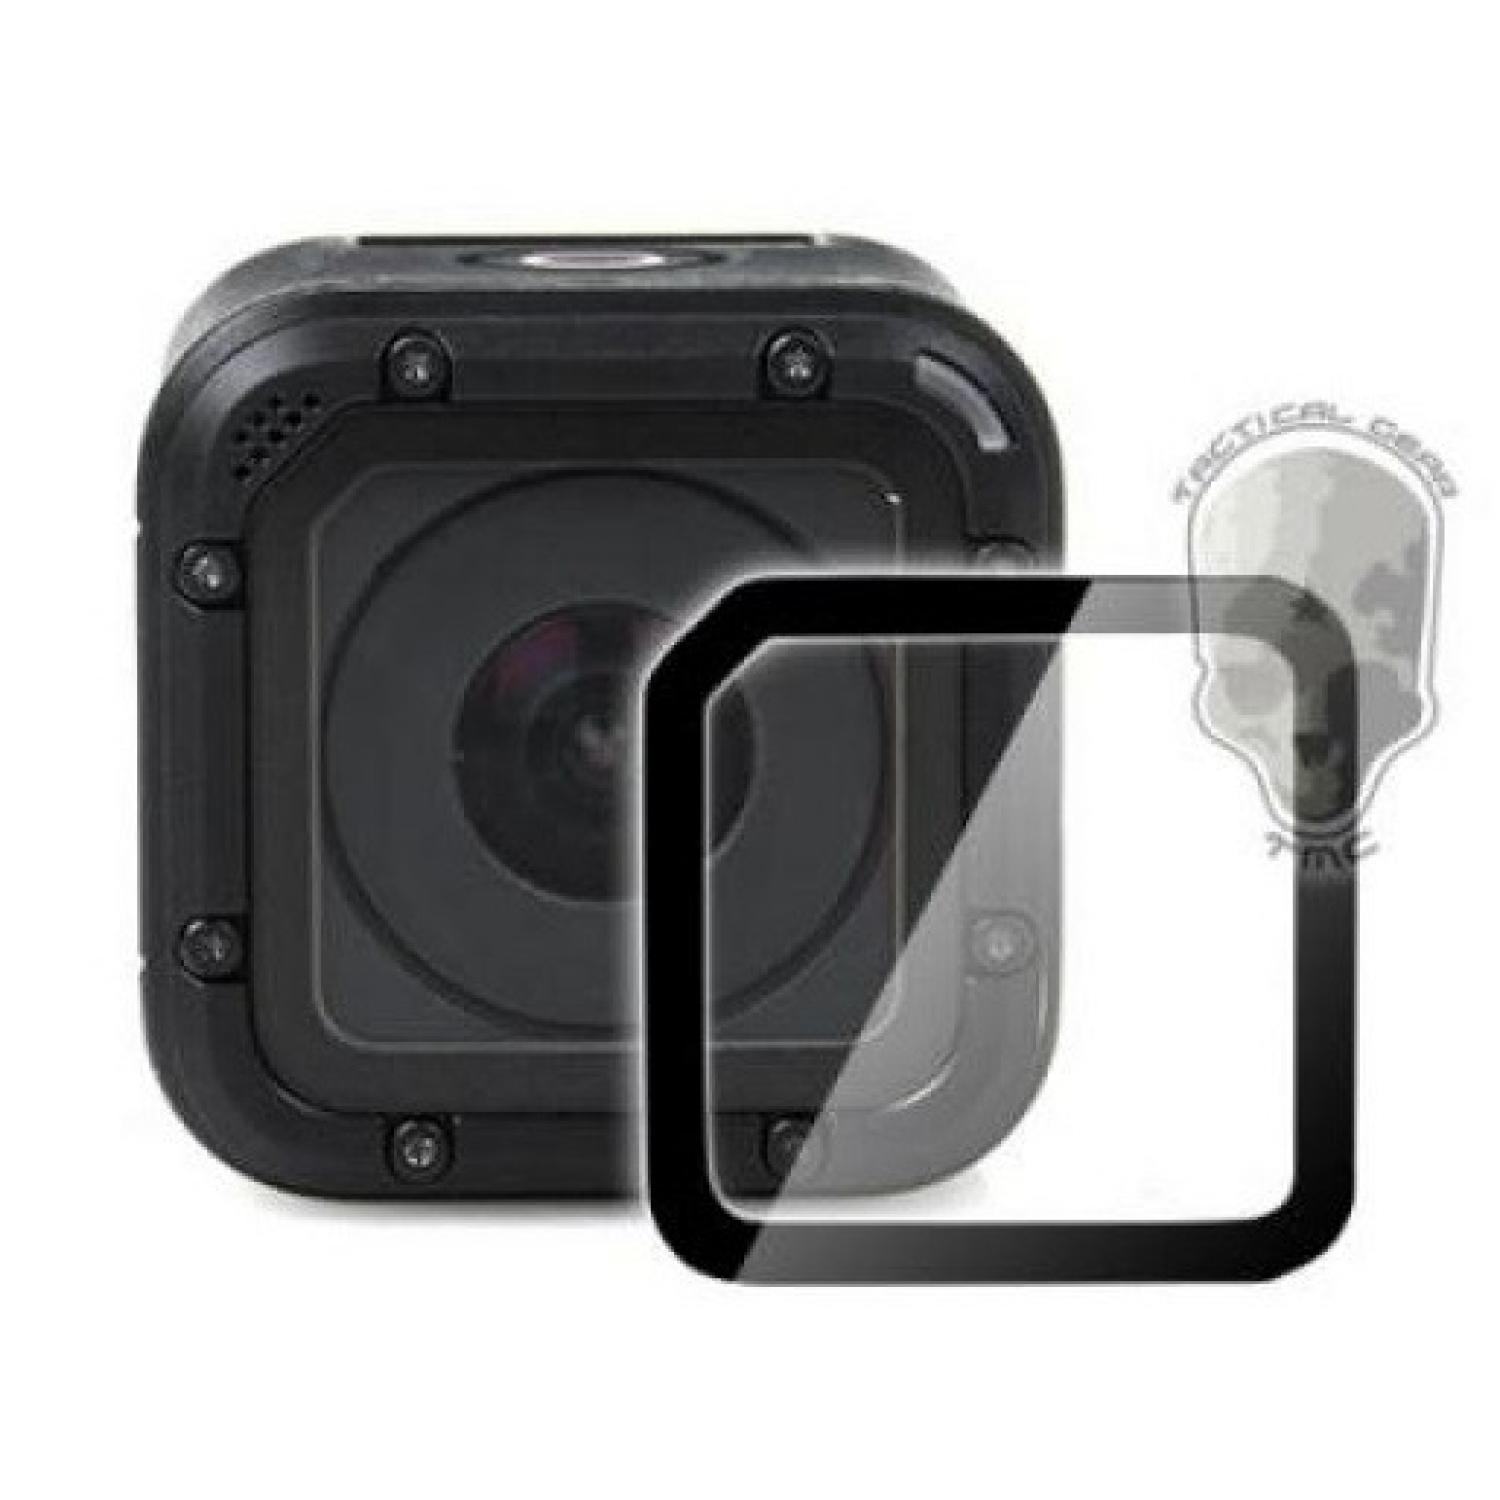 TMC Lens Replacement Kit Screen Protector GoPro Hero 4 Session - HR341